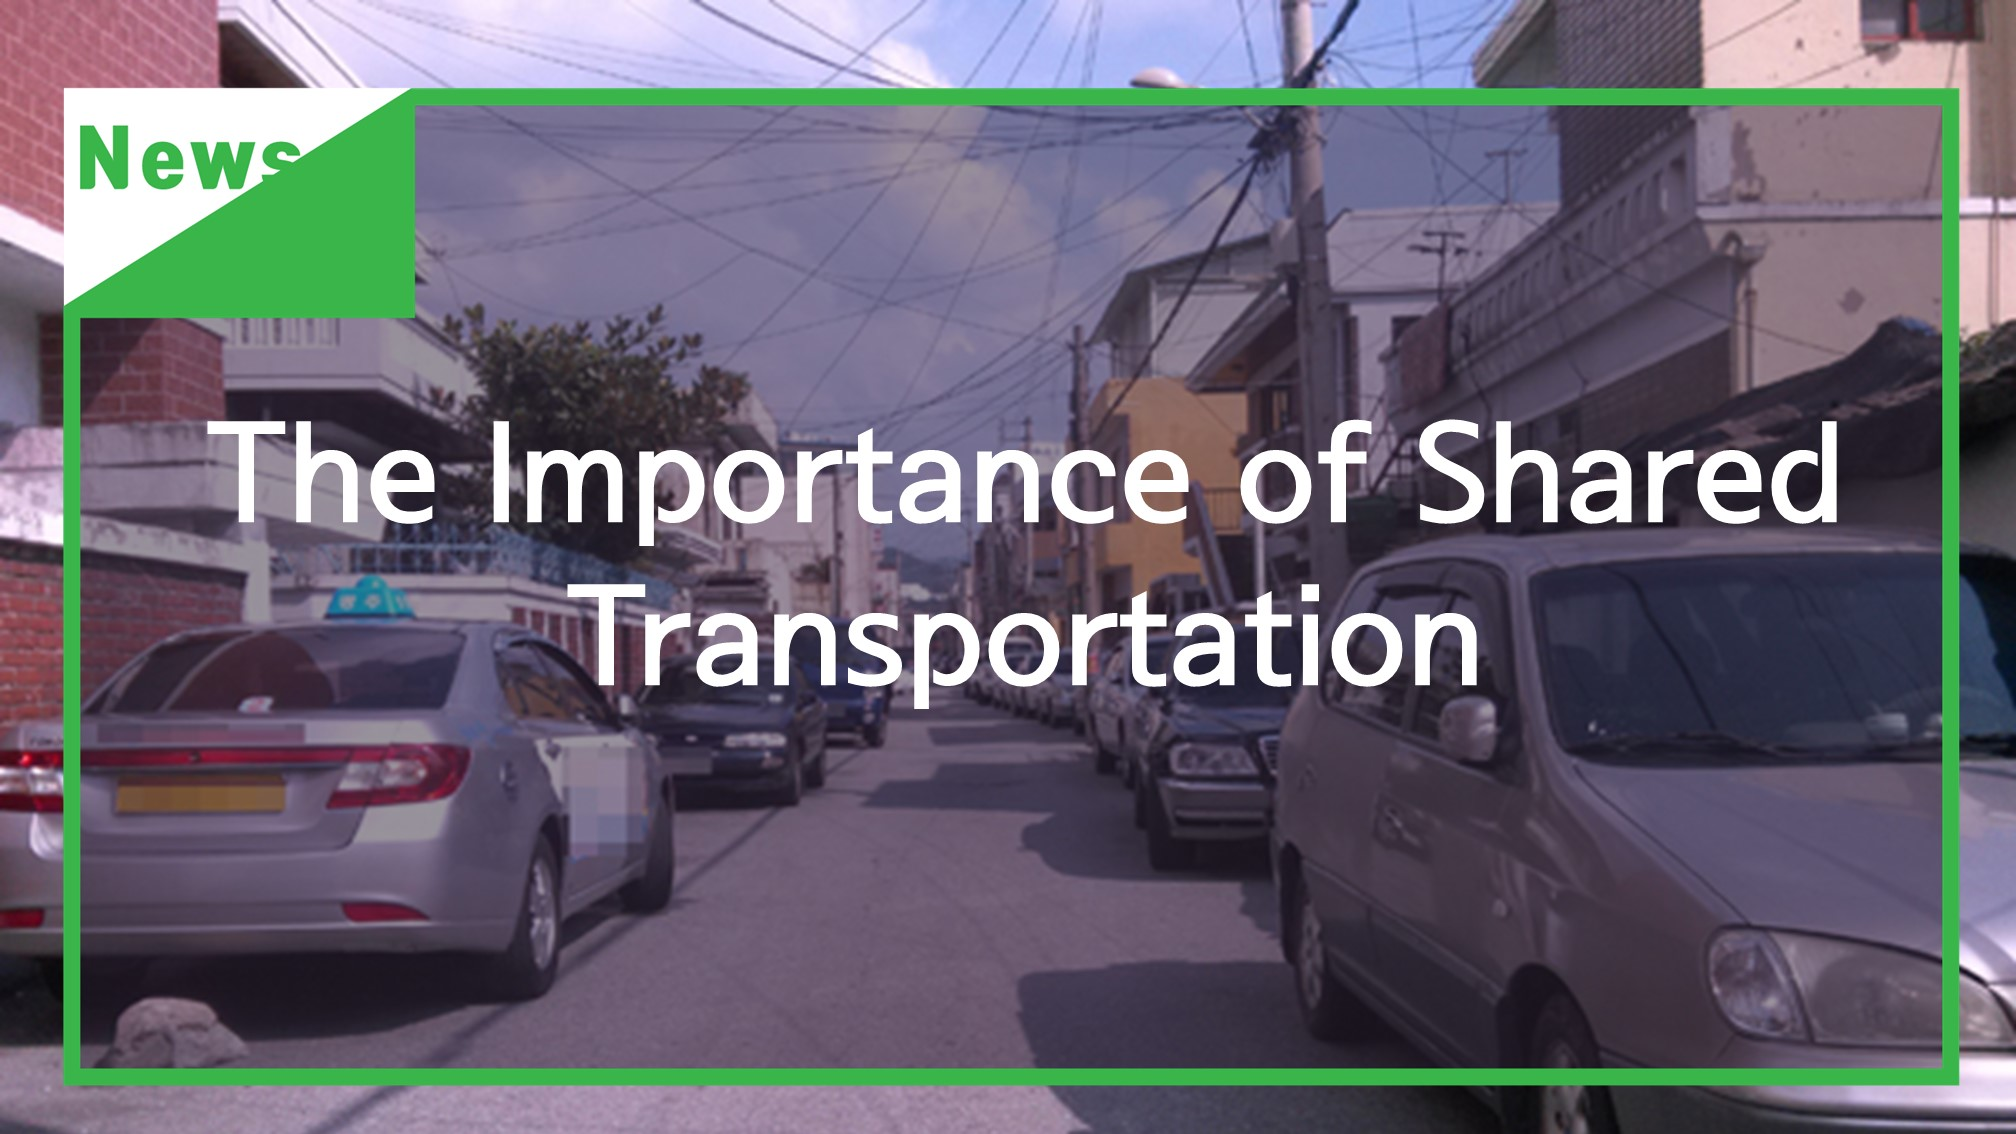 [Resources] The Importance of Shared Transportation